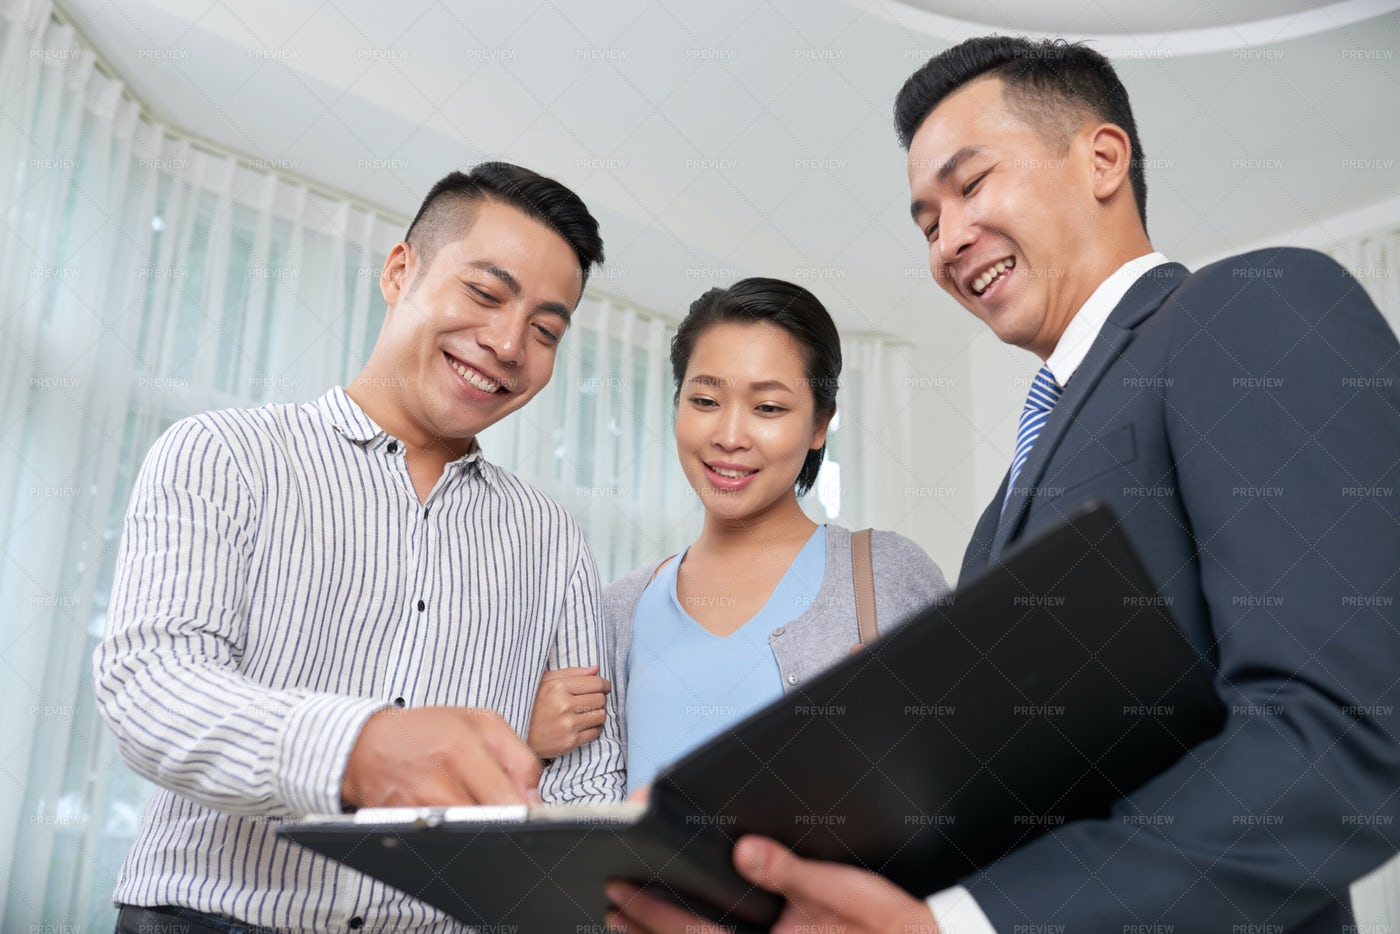 Discussing Contract With Clients: Stock Photos